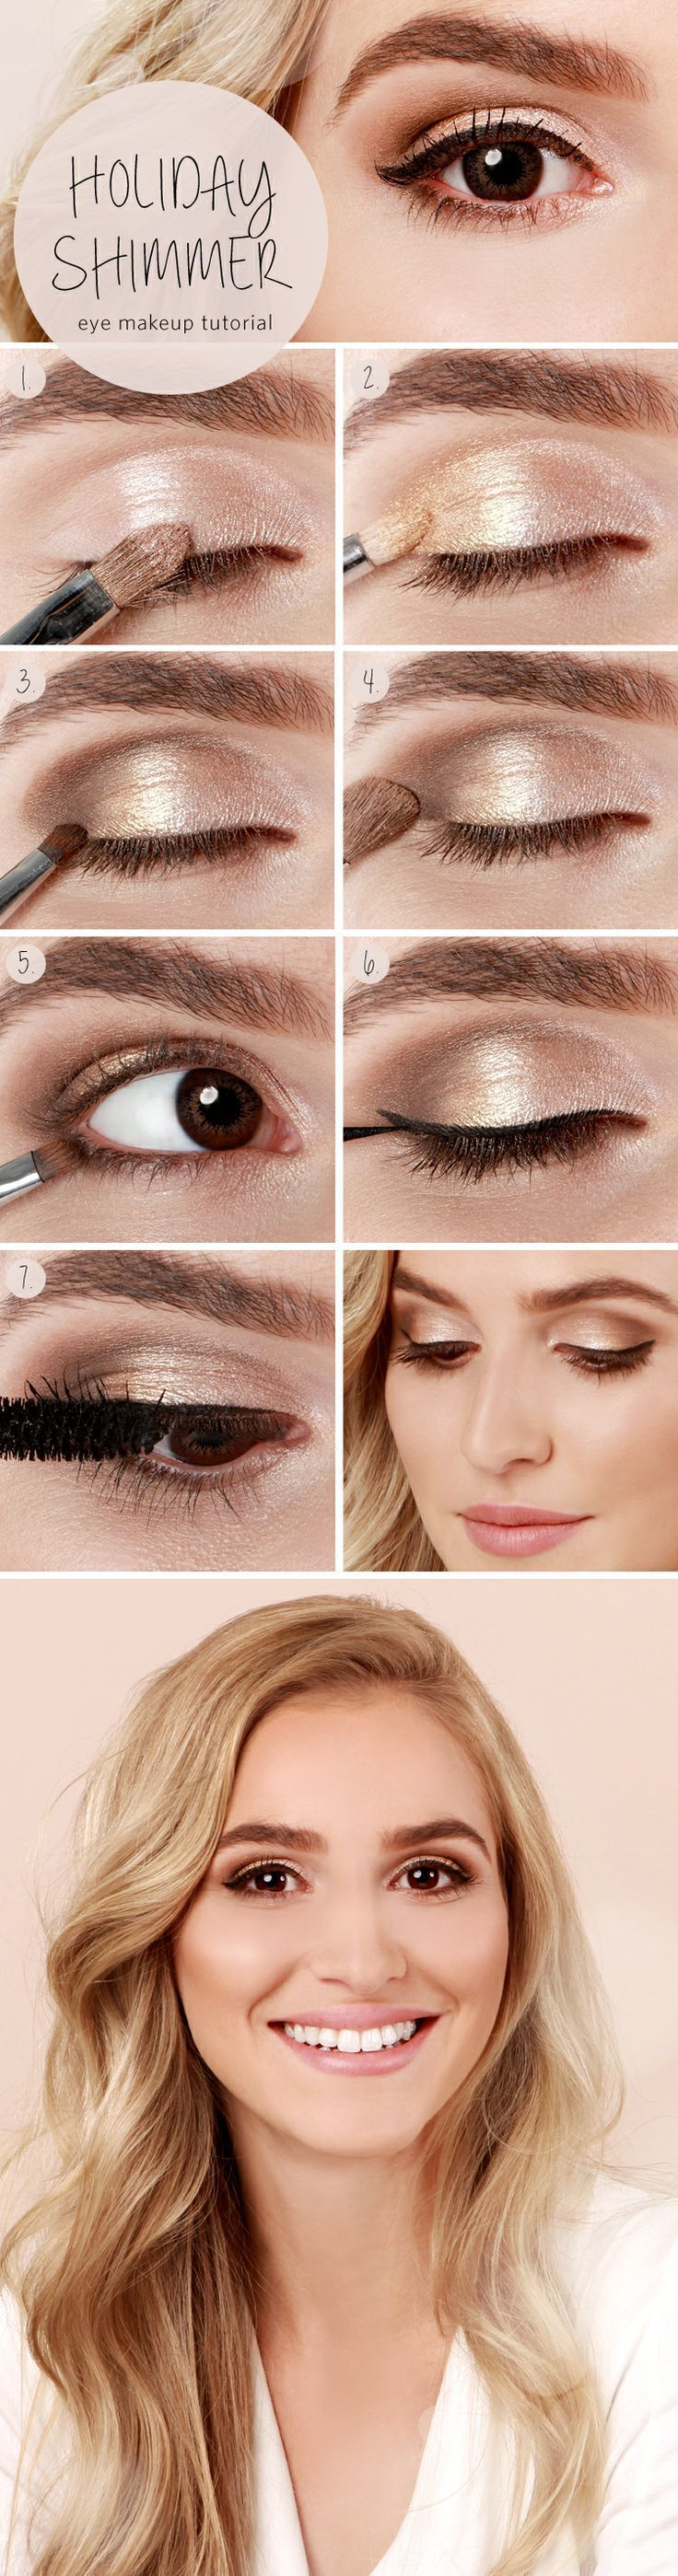 431 best Best of Beauty images on Pinterest | Hair, Beauty tips ...